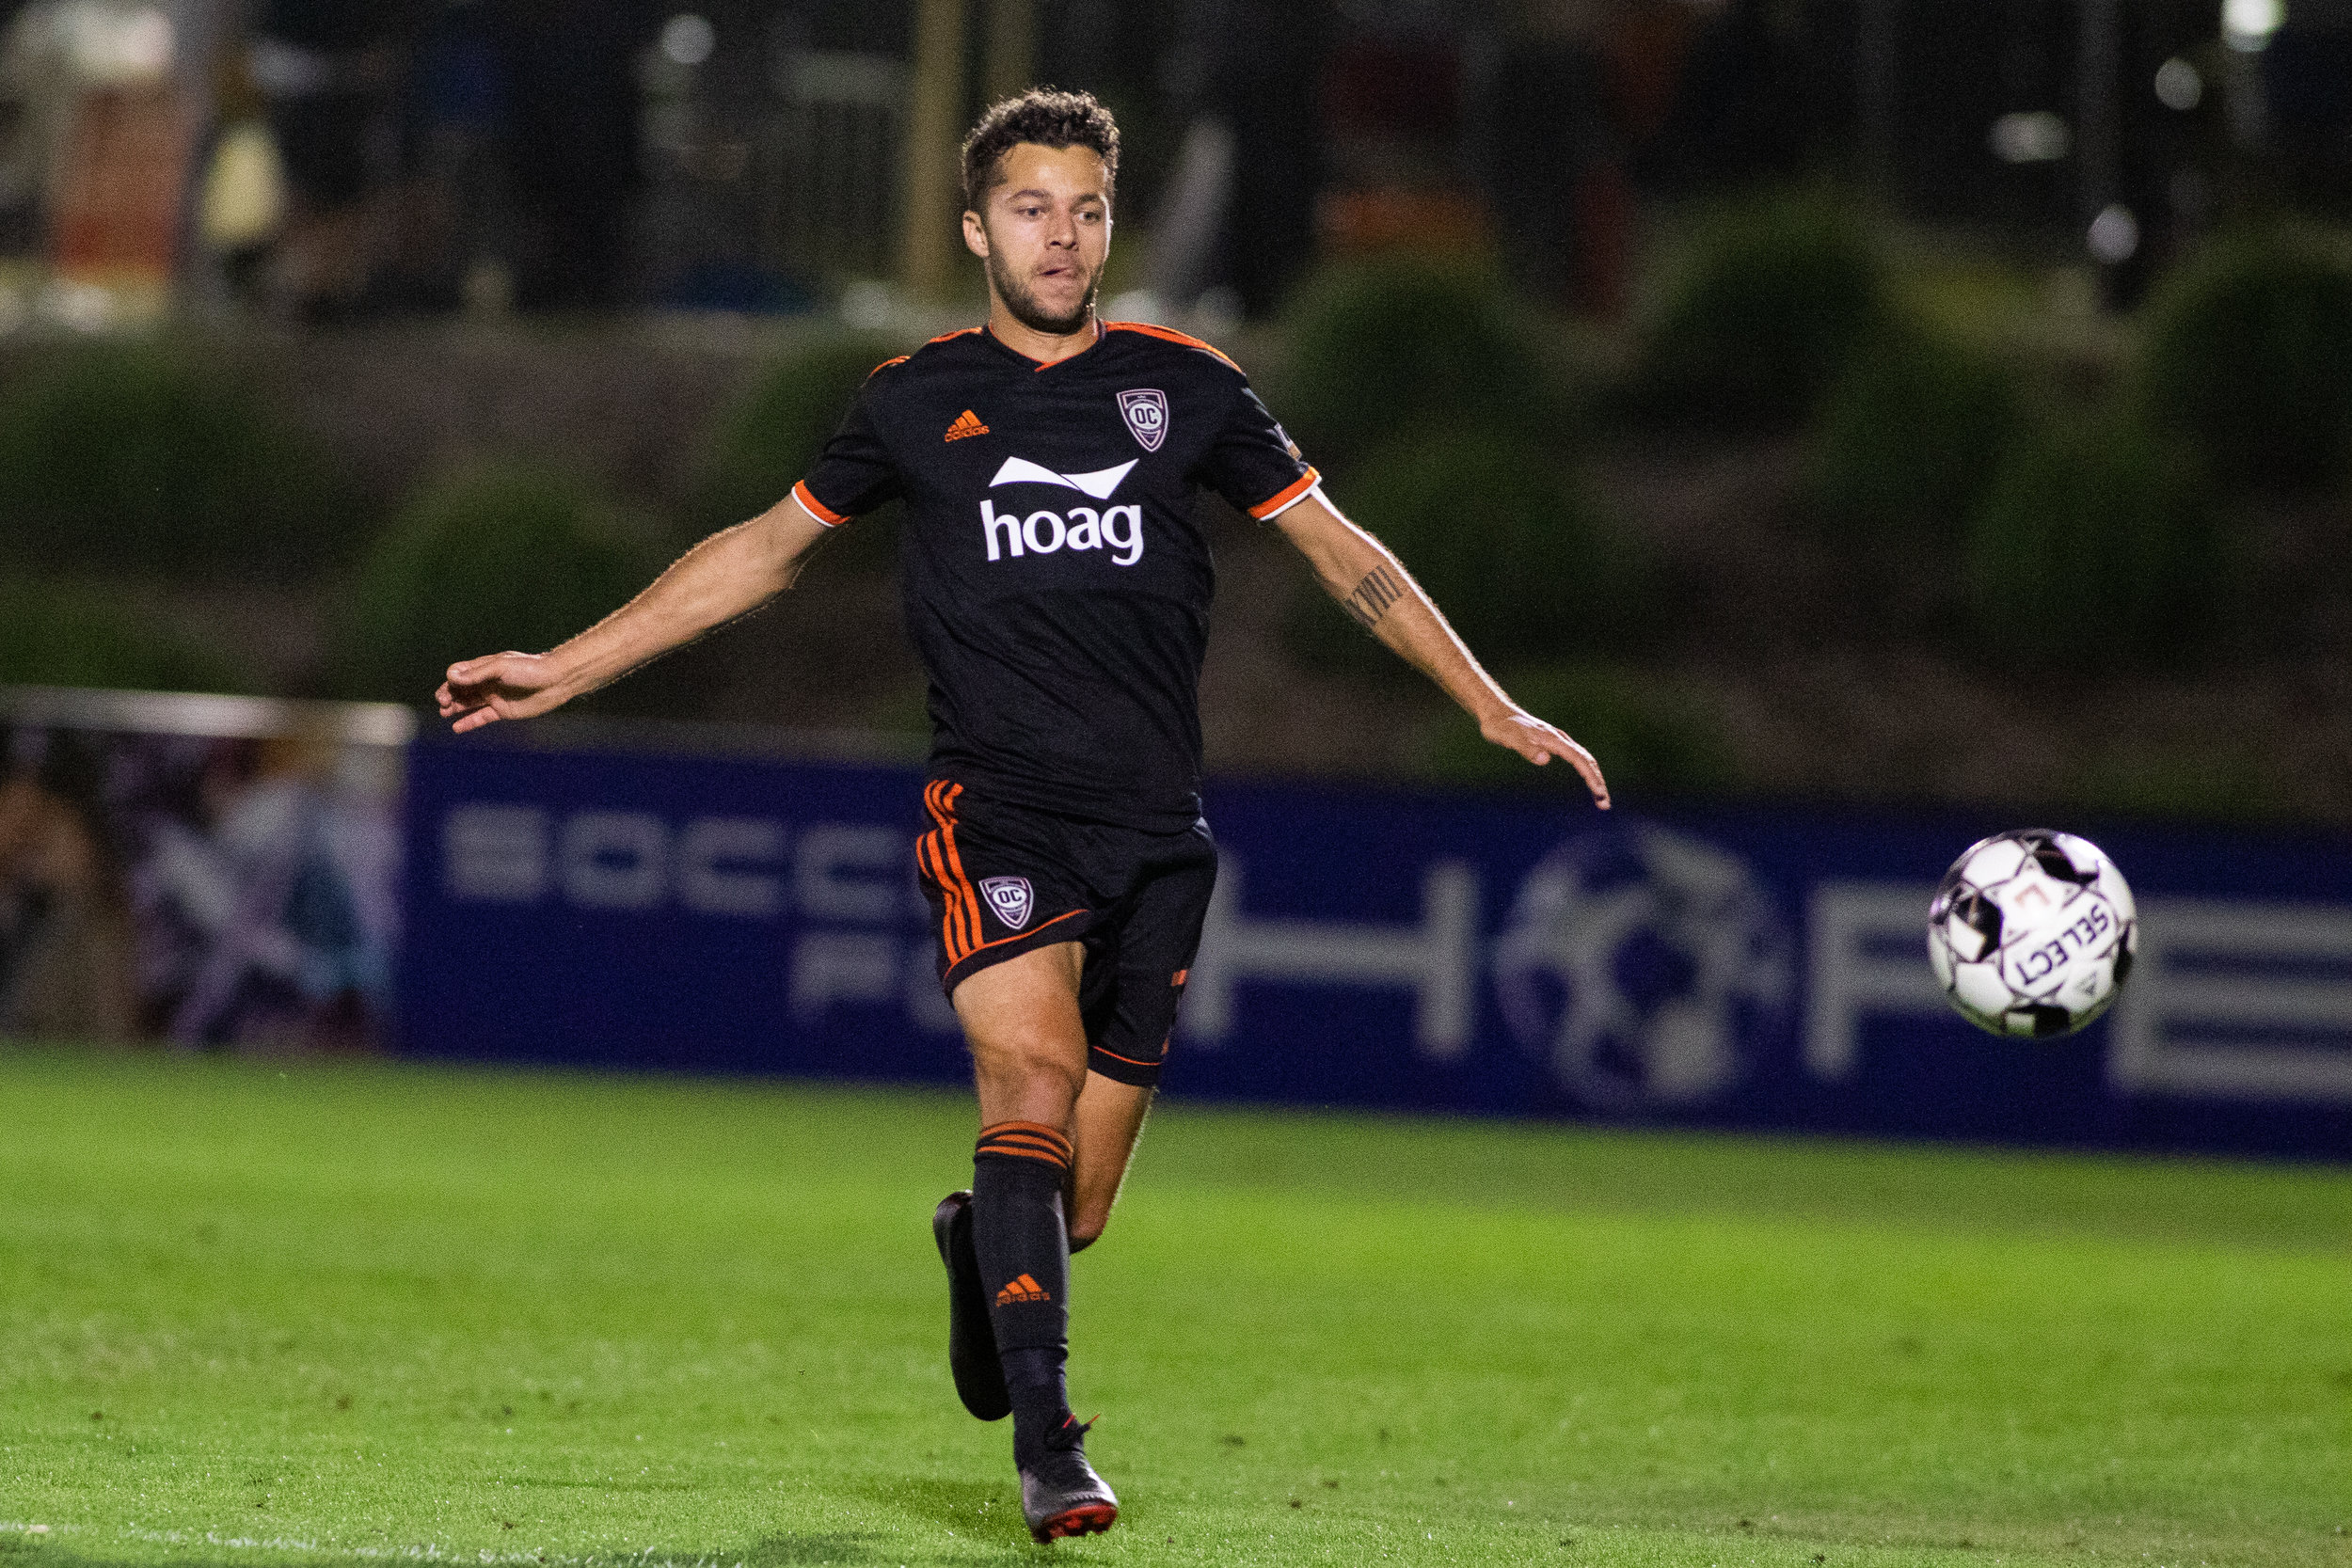 Orange County SC winger Jerry van Wolfgang.  |  Photo courtesy of Orange County SC/Liza Rosales